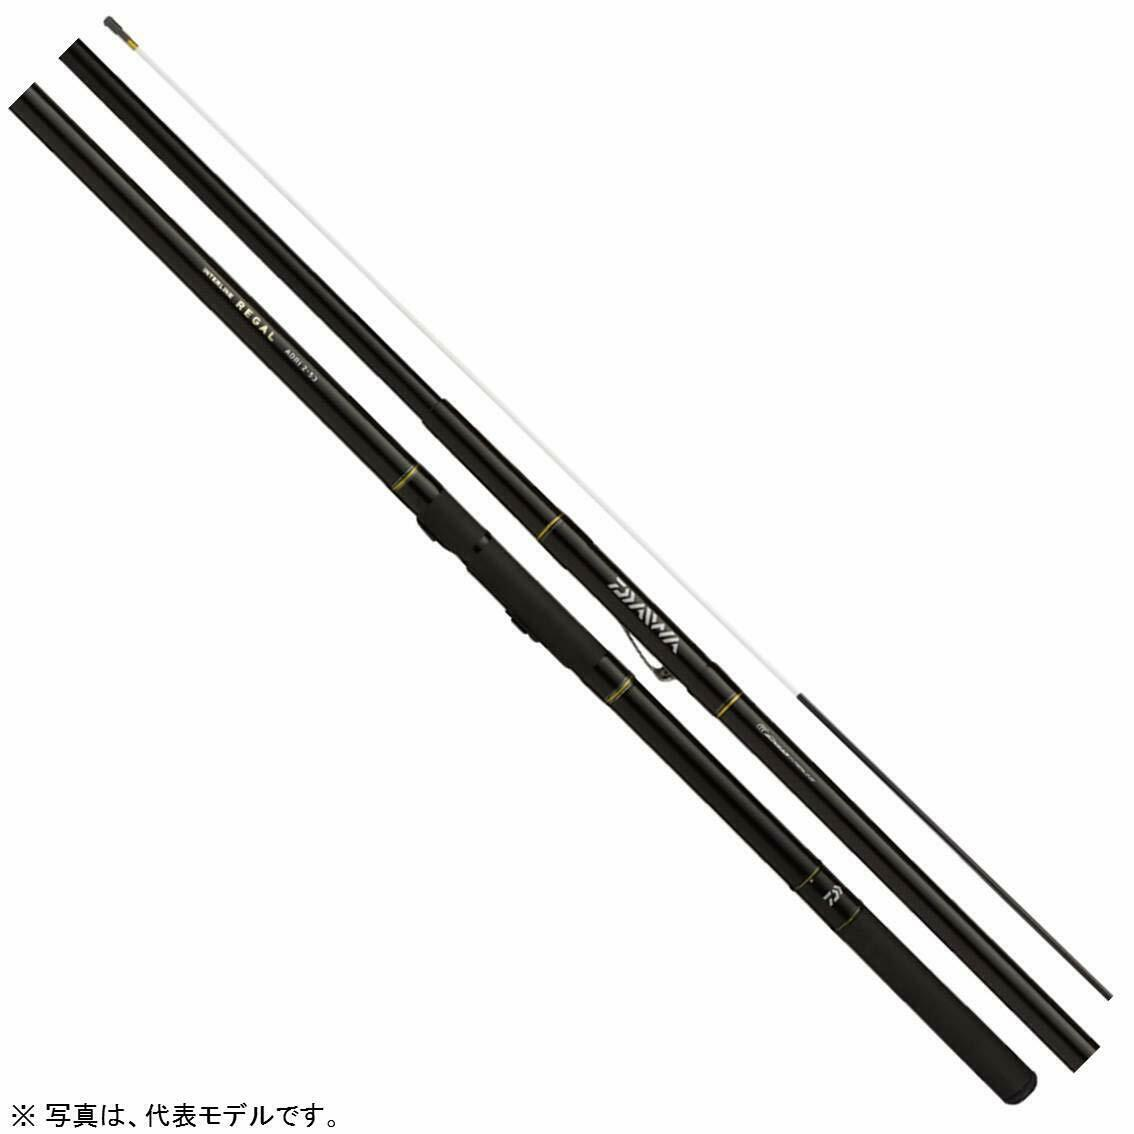 Daiwa isosao Spinning Rod interlineal Regal AORI 2 Gou - 53 de los pescadores Elegante